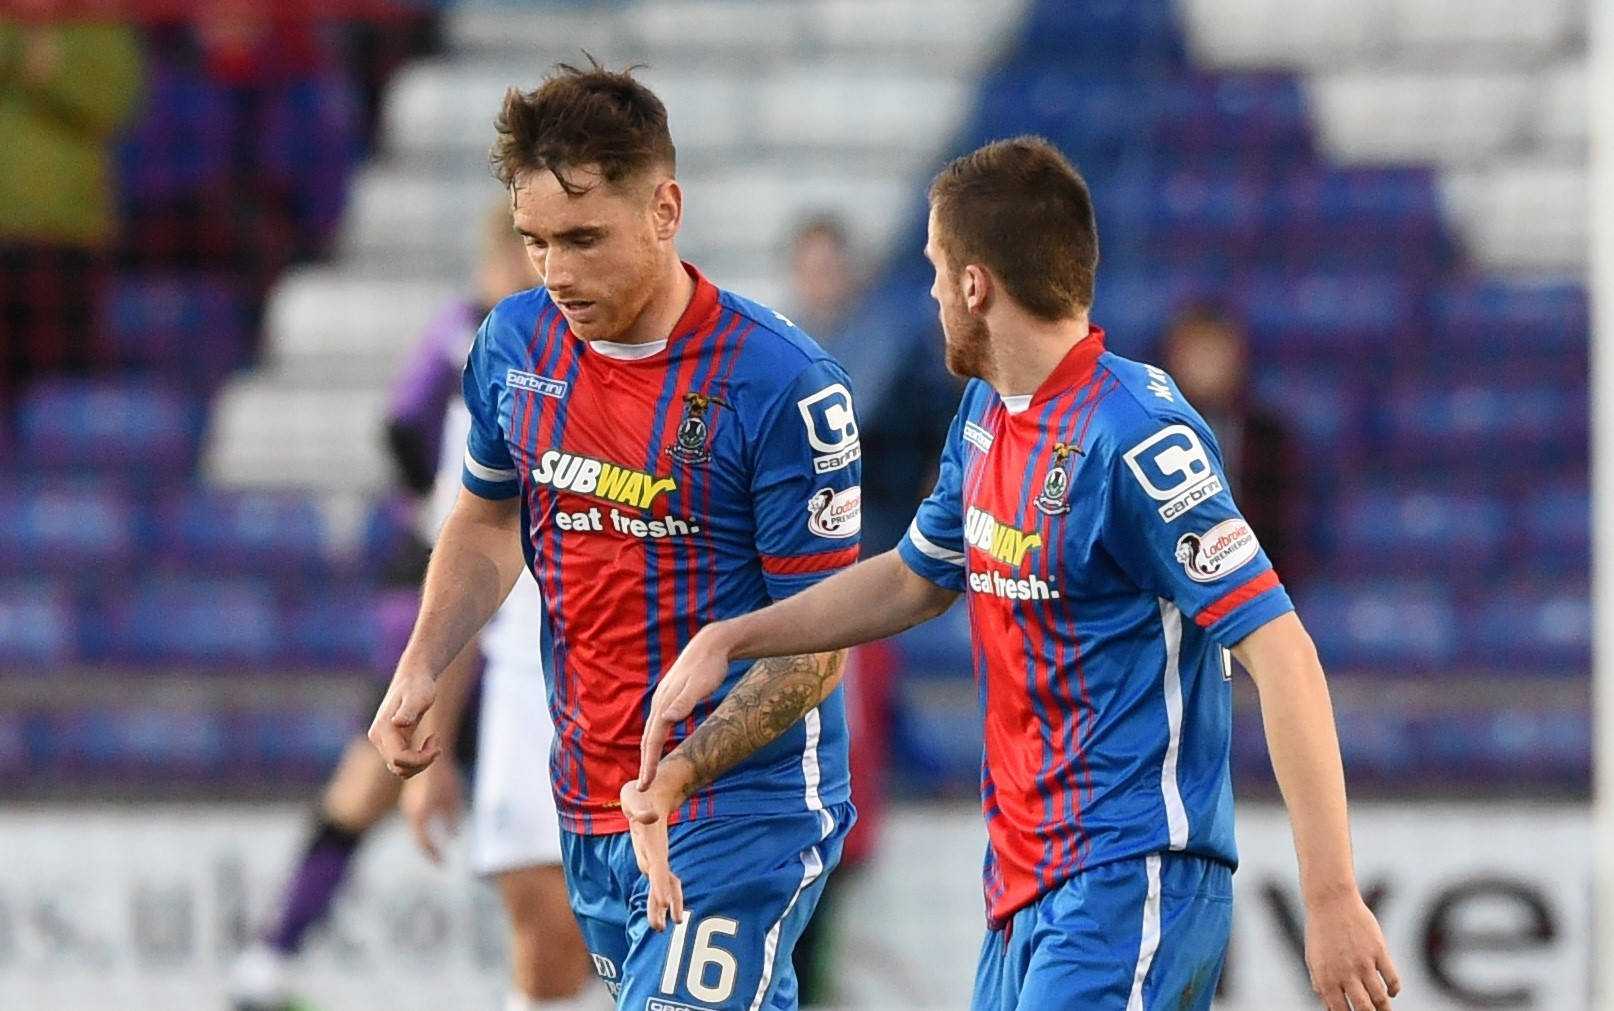 Caley Thistle's Greg Tansey celebrates his goal with team-mate Liam Polworth